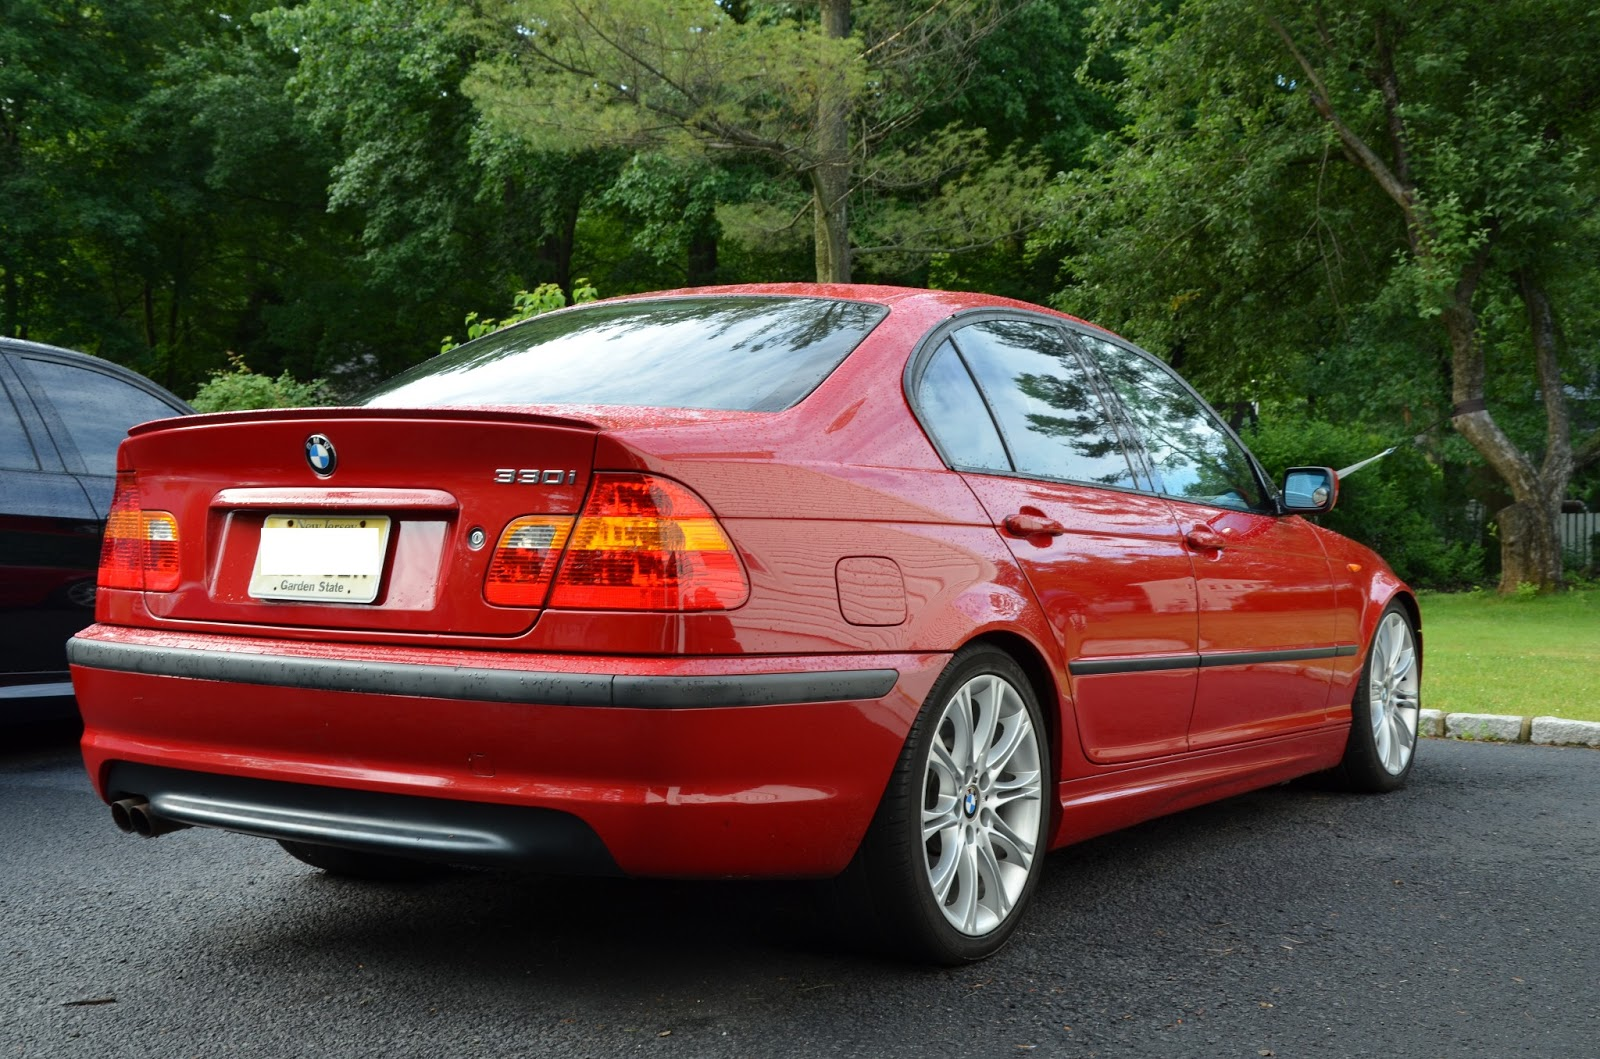 E46 2004 Imola Red 330i Zhp Nj